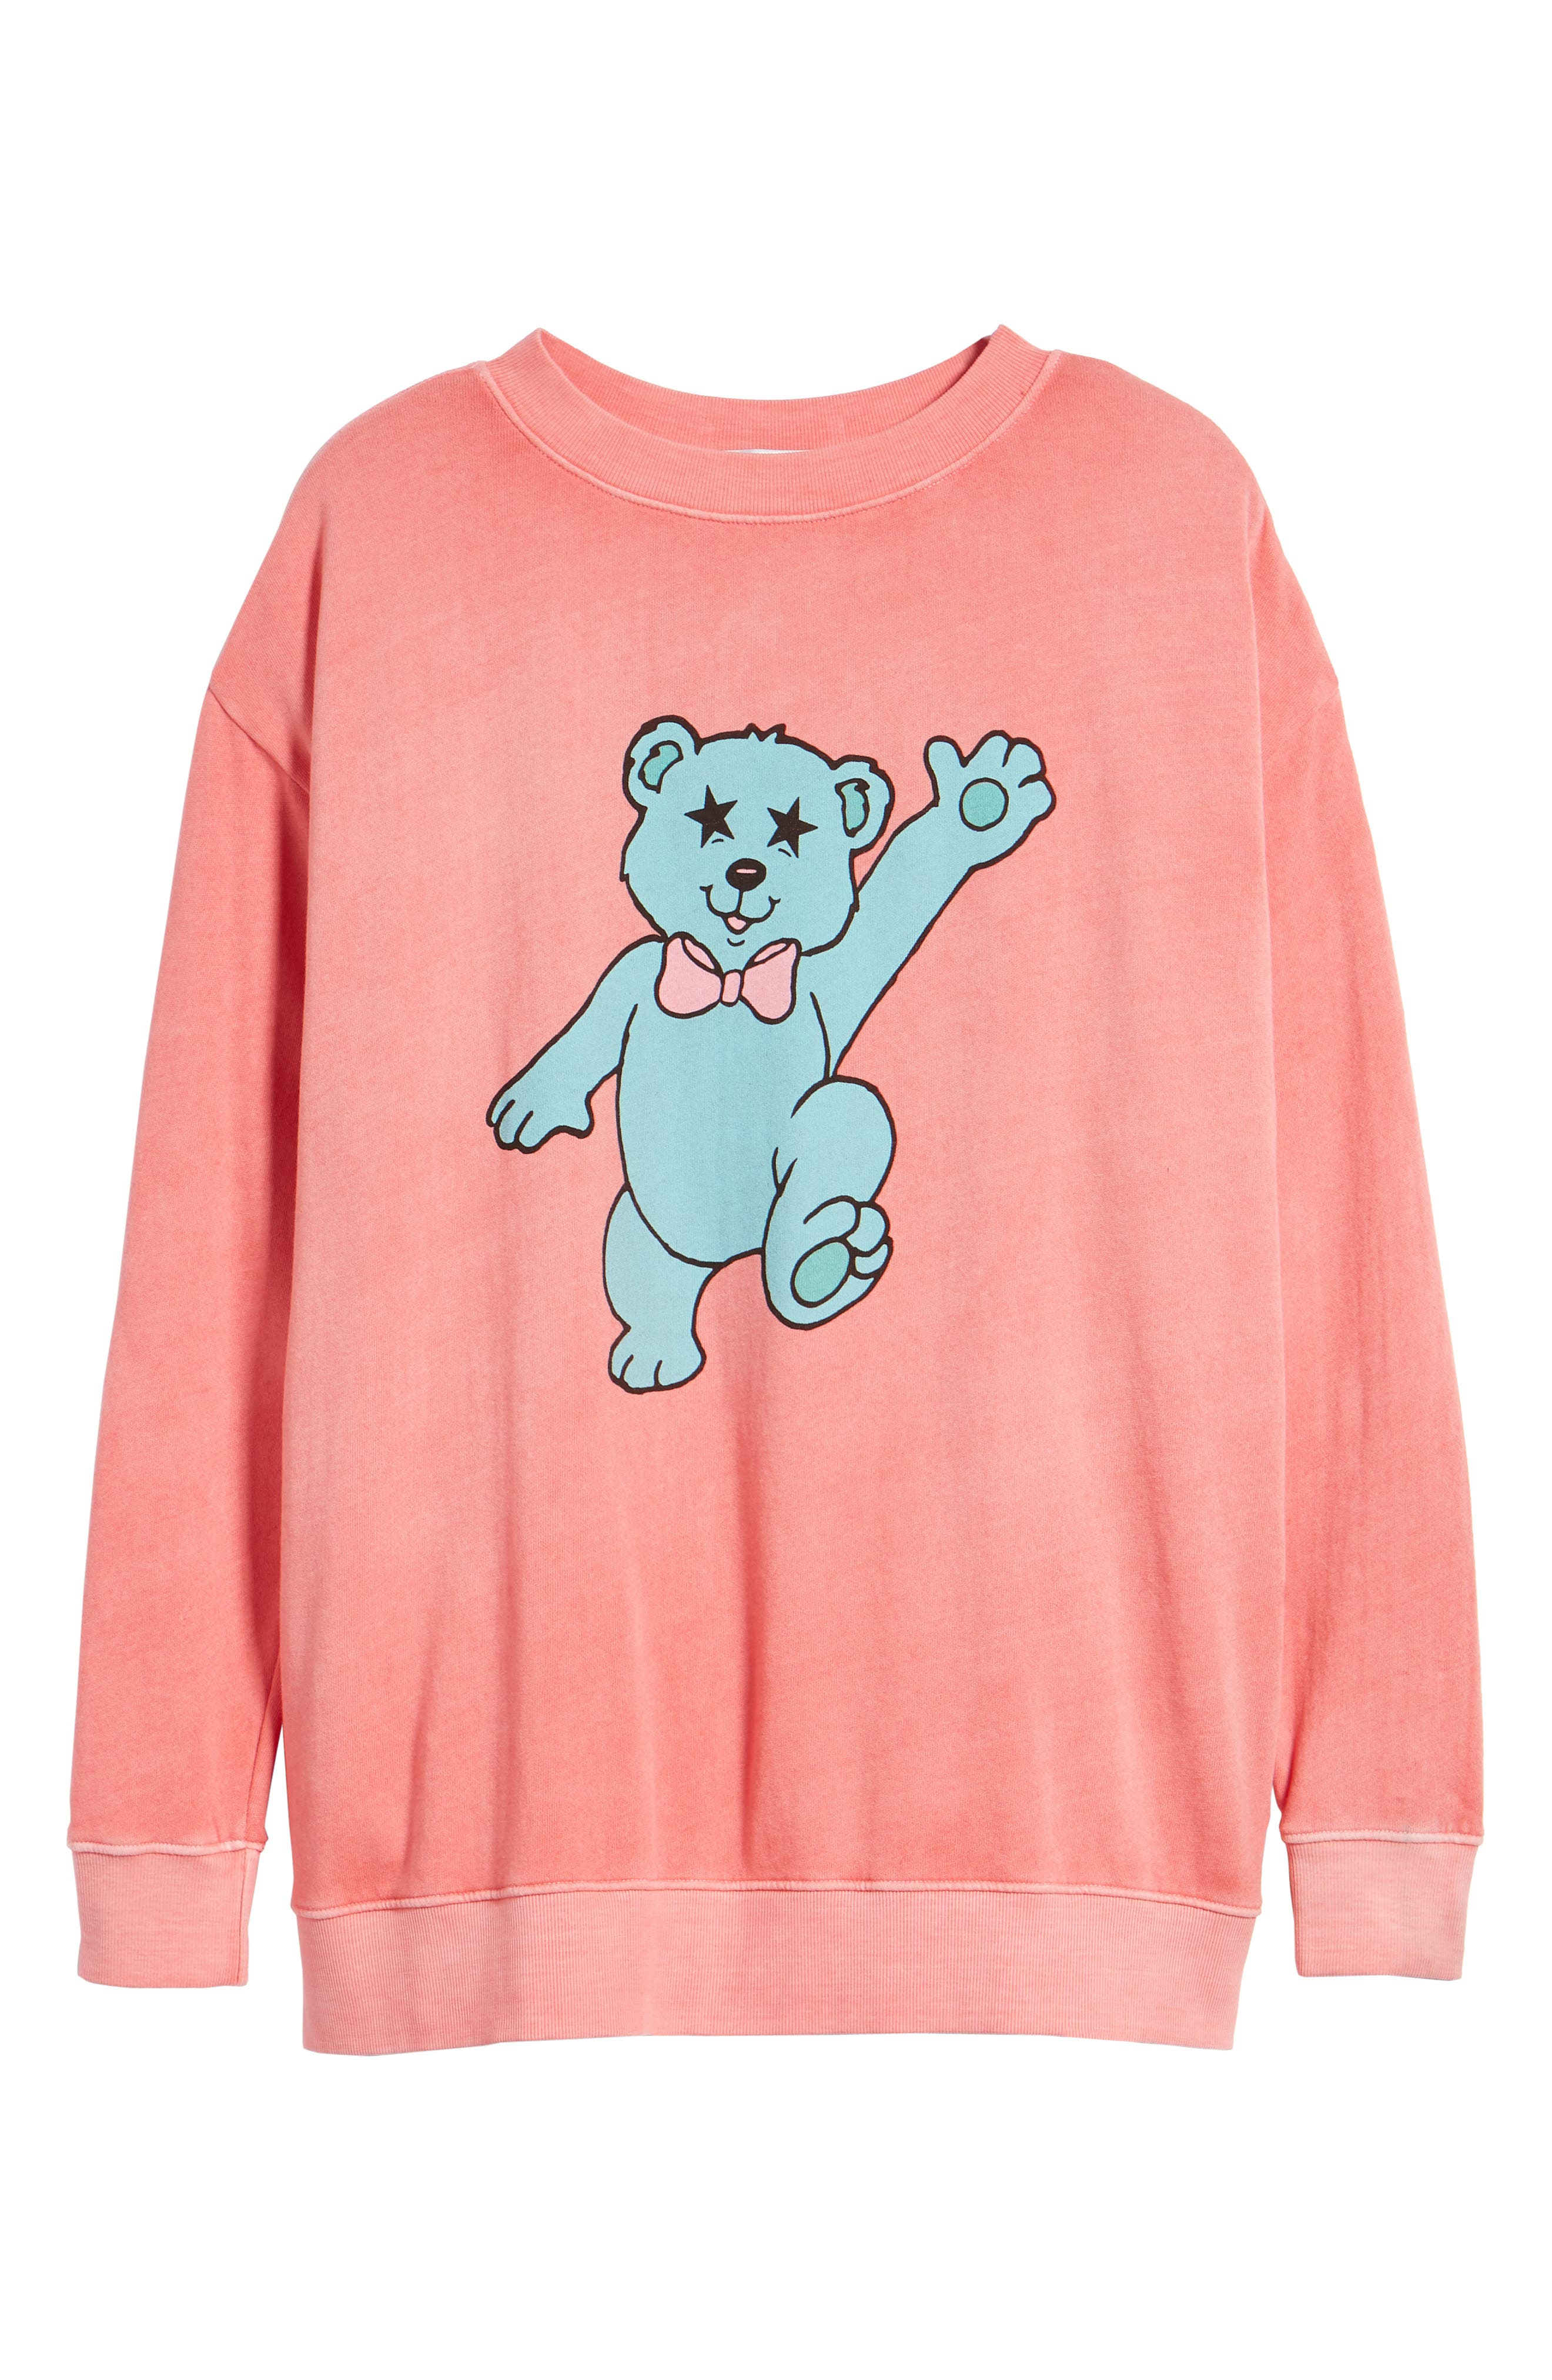 Groovy Teddy Road Trip Pullover Sweatshirt,                             Alternate thumbnail 7, color,                             Pigment Red Flare